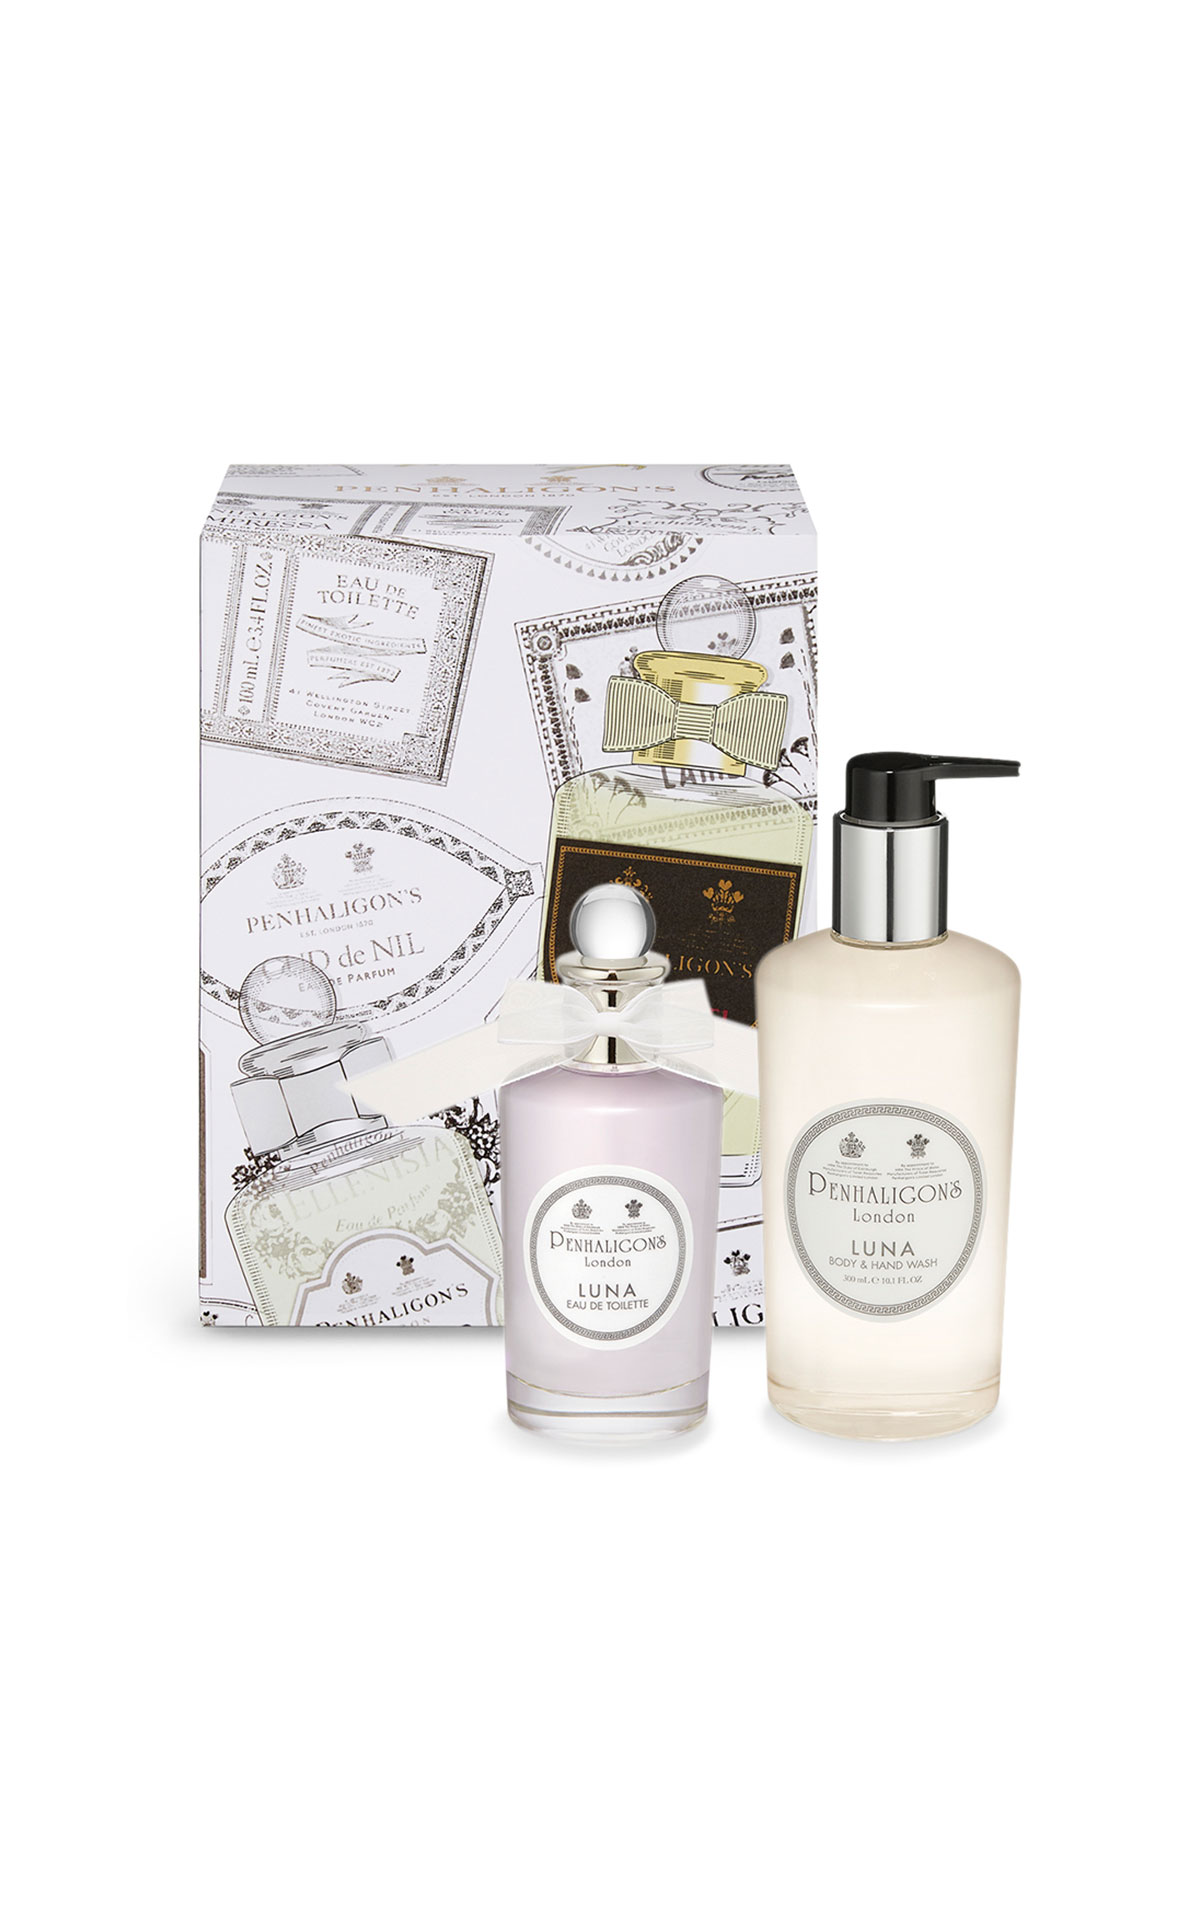 Penhaligon's Luna 100ml unboxed and Luna body & hand wash  from Bicester Village